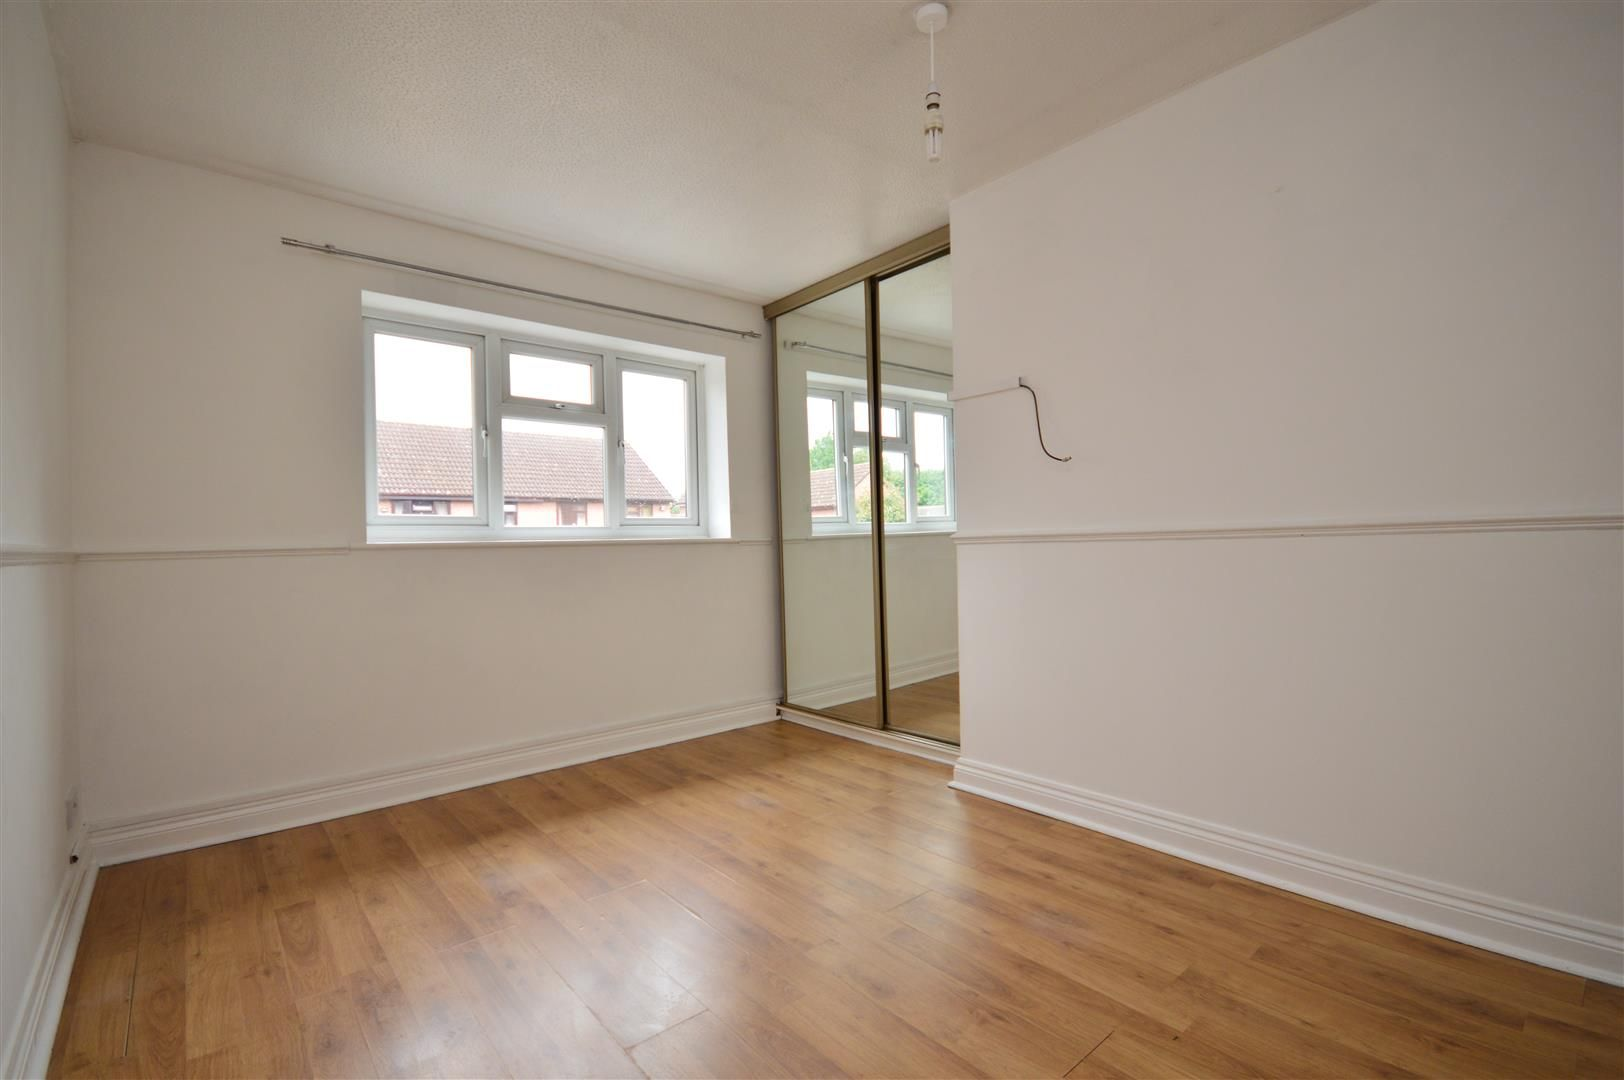 2 bed end-of-terrace for sale in Belmont 6